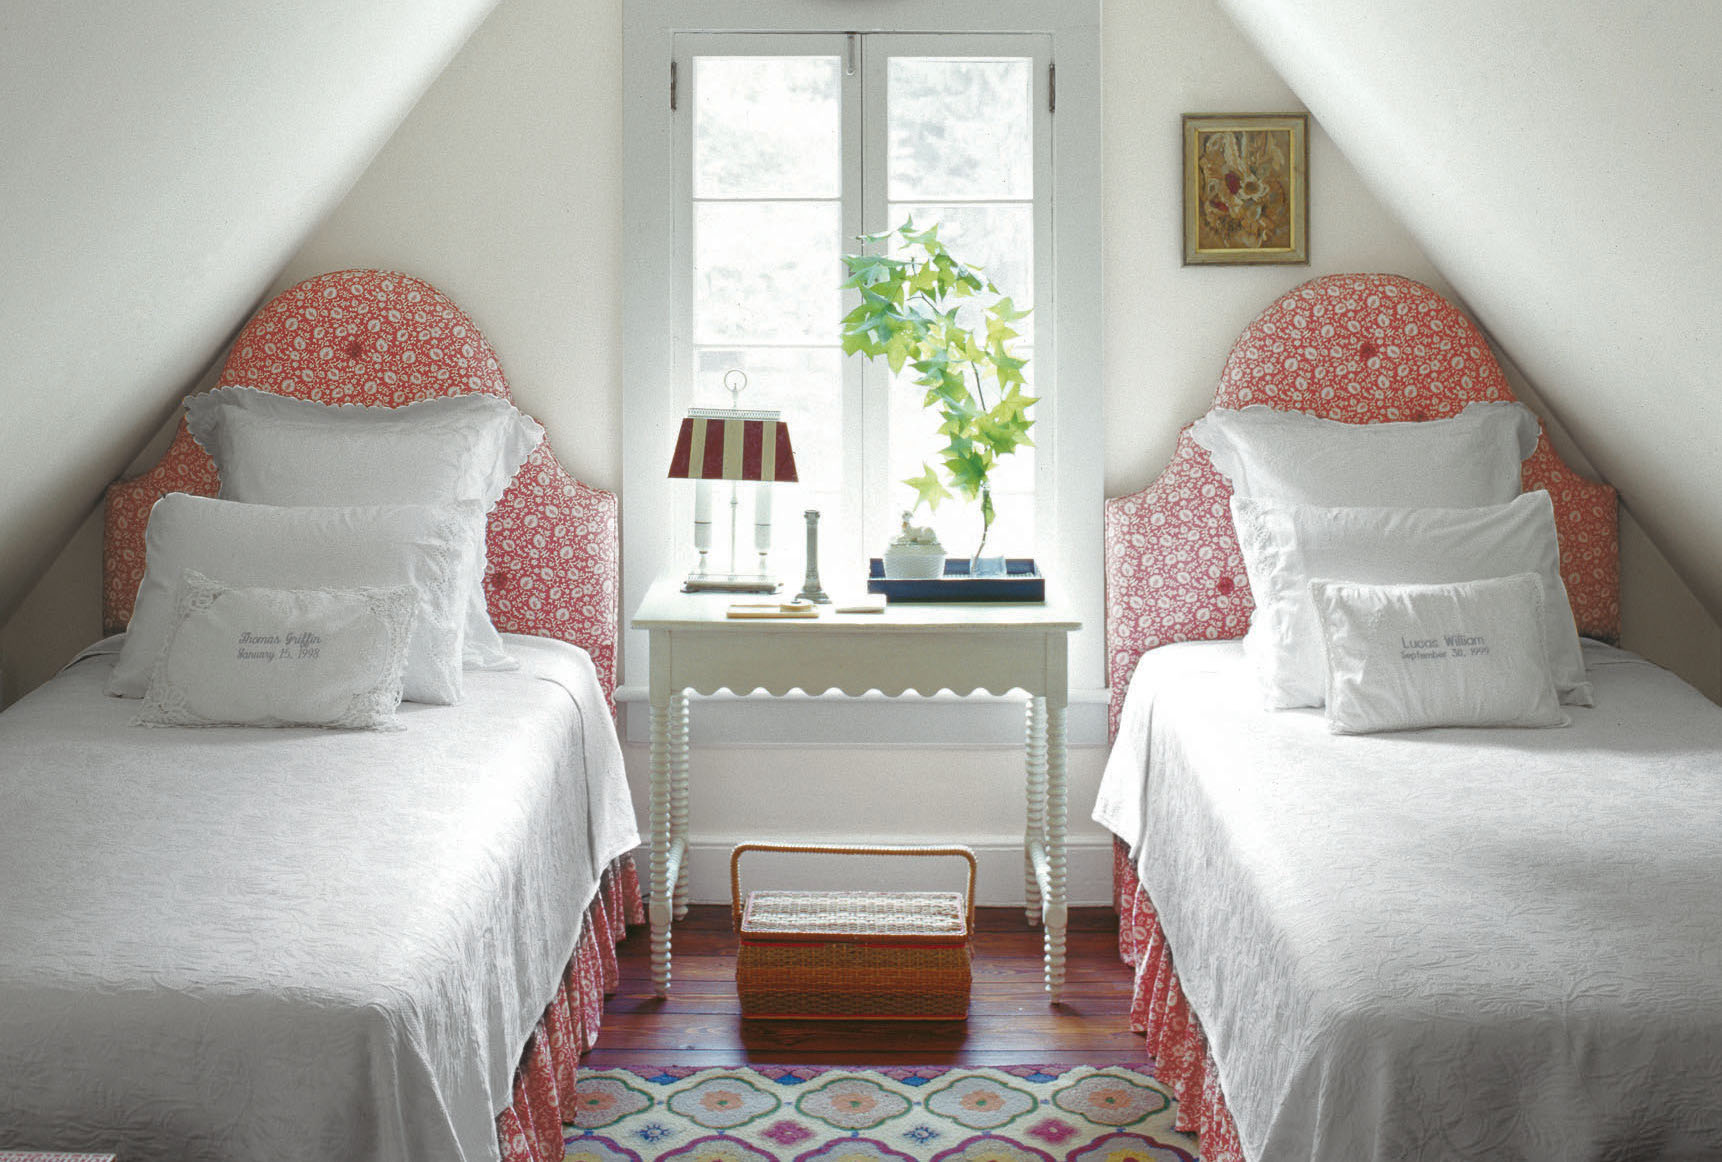 Decoration Nice 20 Small Bedroom Design Ideas Decorating Tips For Small